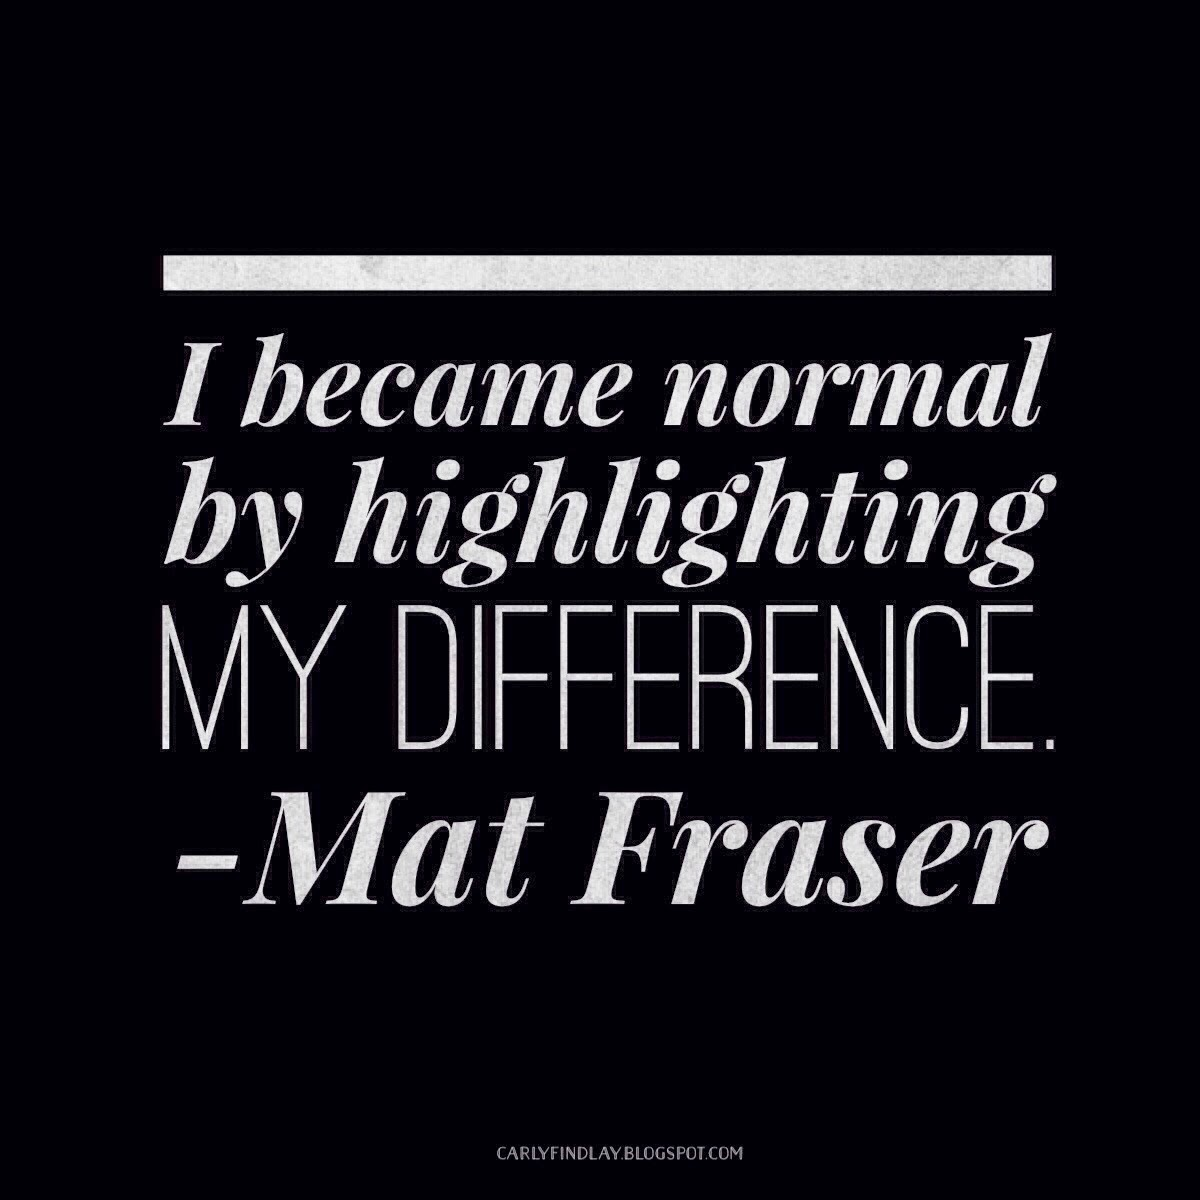 Mat Fraser quote: 'I became normal by highlighting my difference'